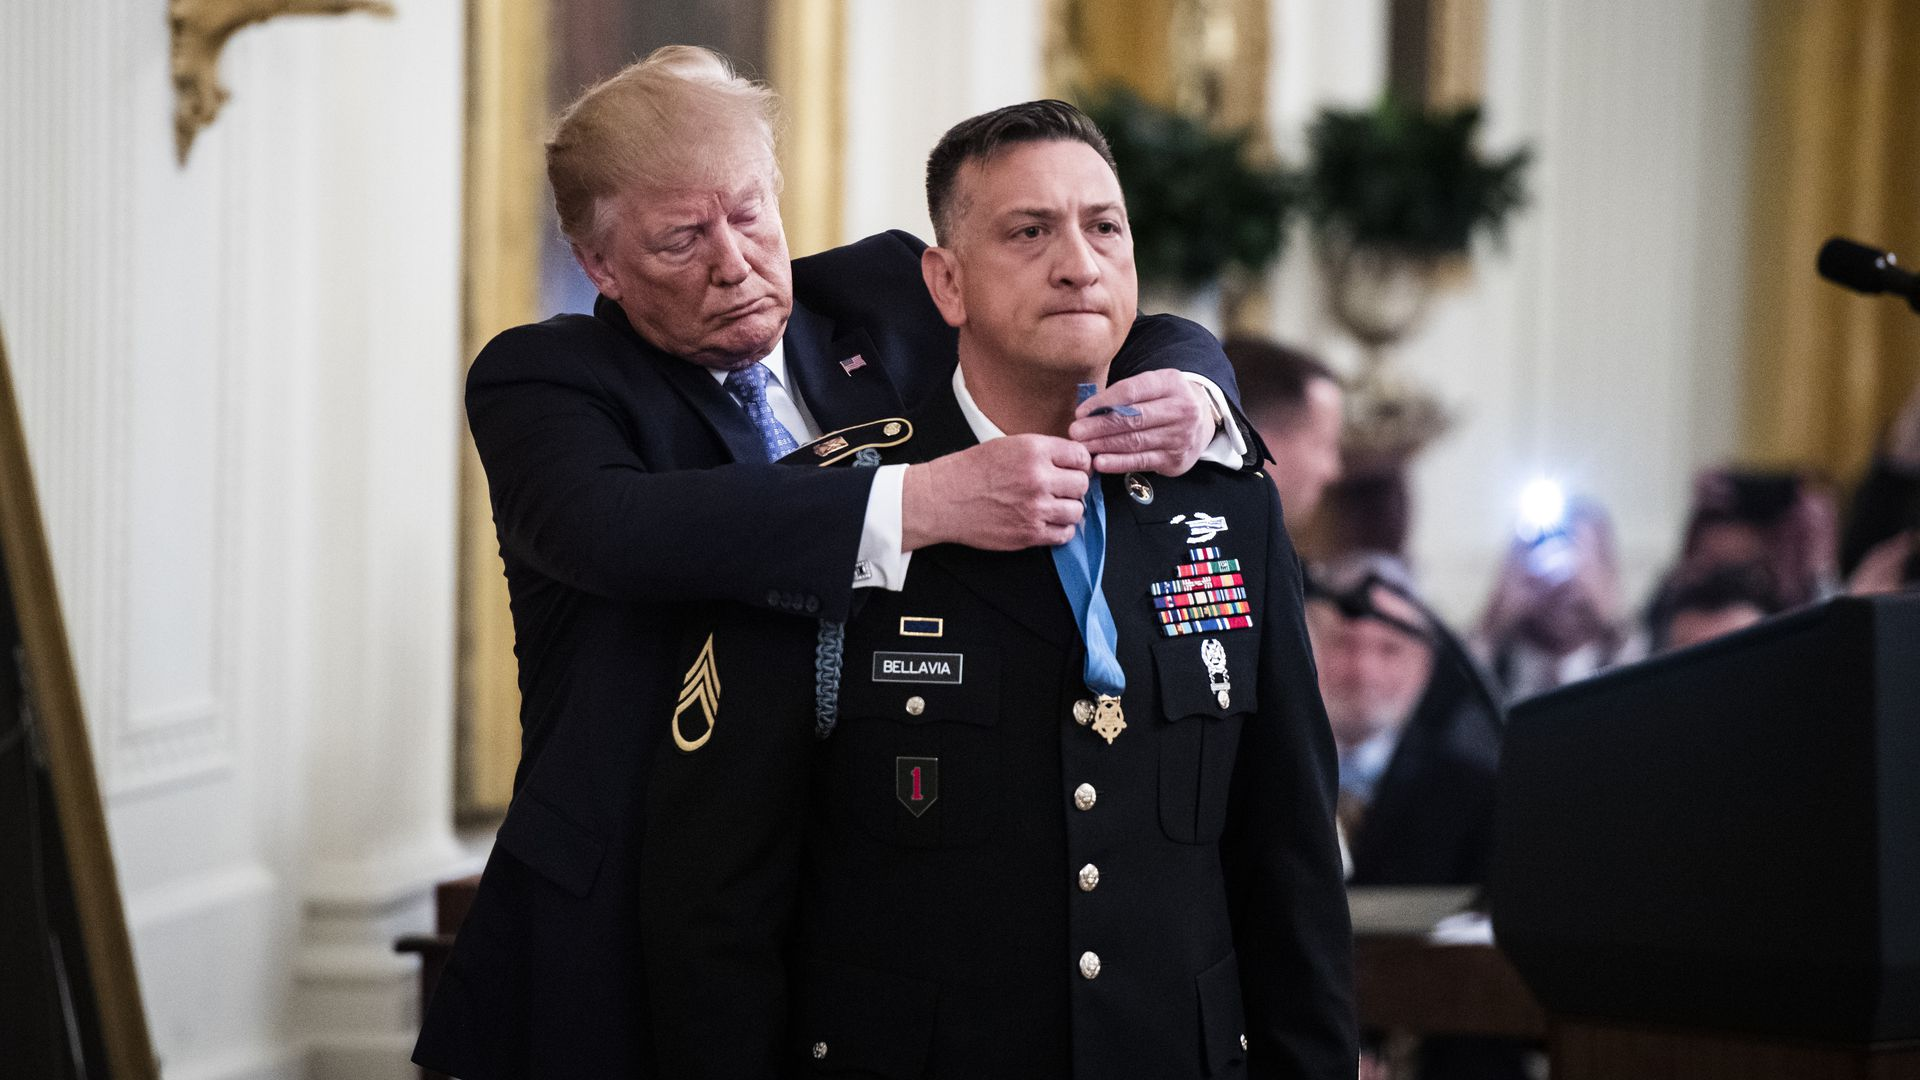 President presents Iraq War veteran who saved an entire squad with the Medal of Honor